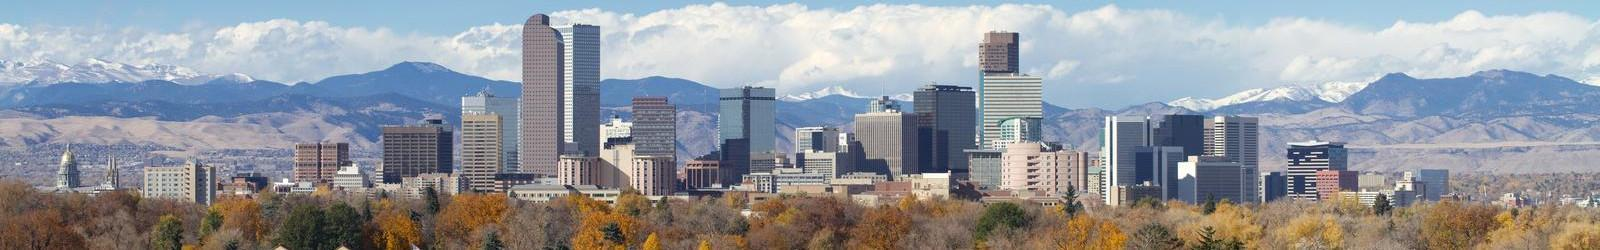 Therapists in Denver, Colorado: psychologists, counselors, and mental health specialists